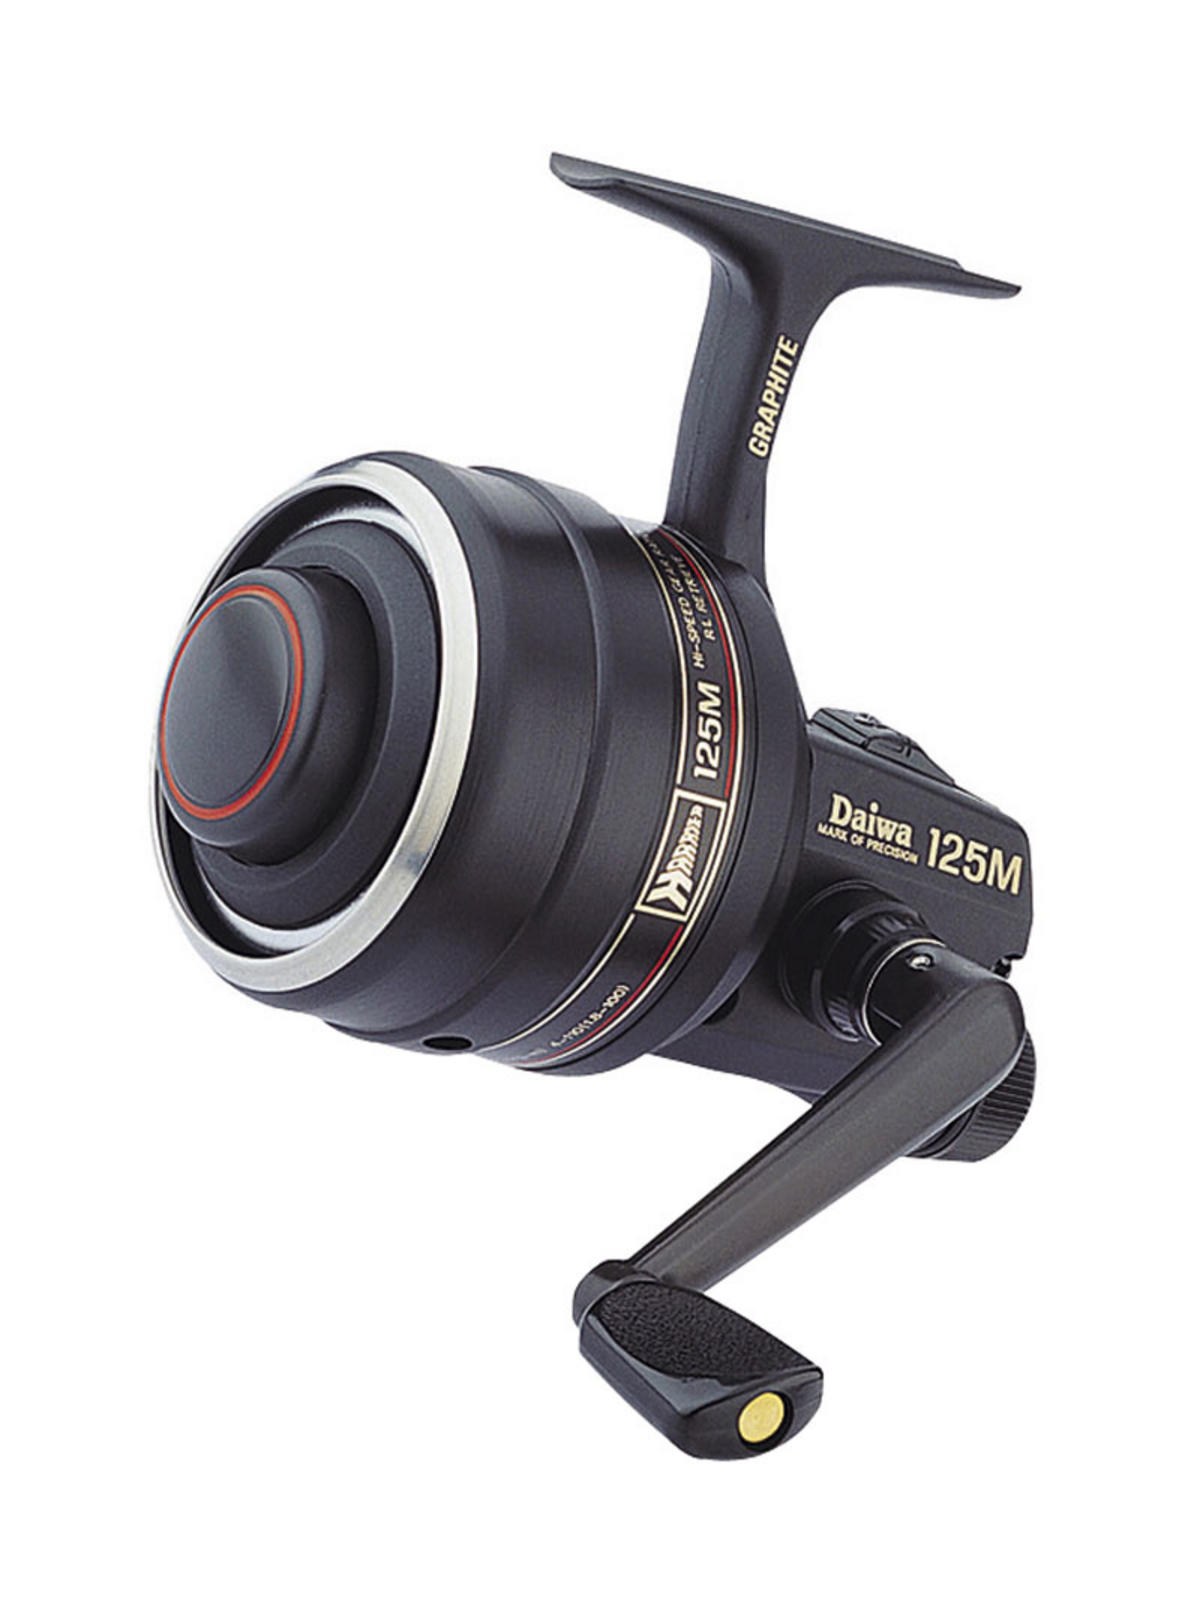 DAIWA HARRIER CLOSED FACE MATCH REEL Model No 125M MATCH REEL